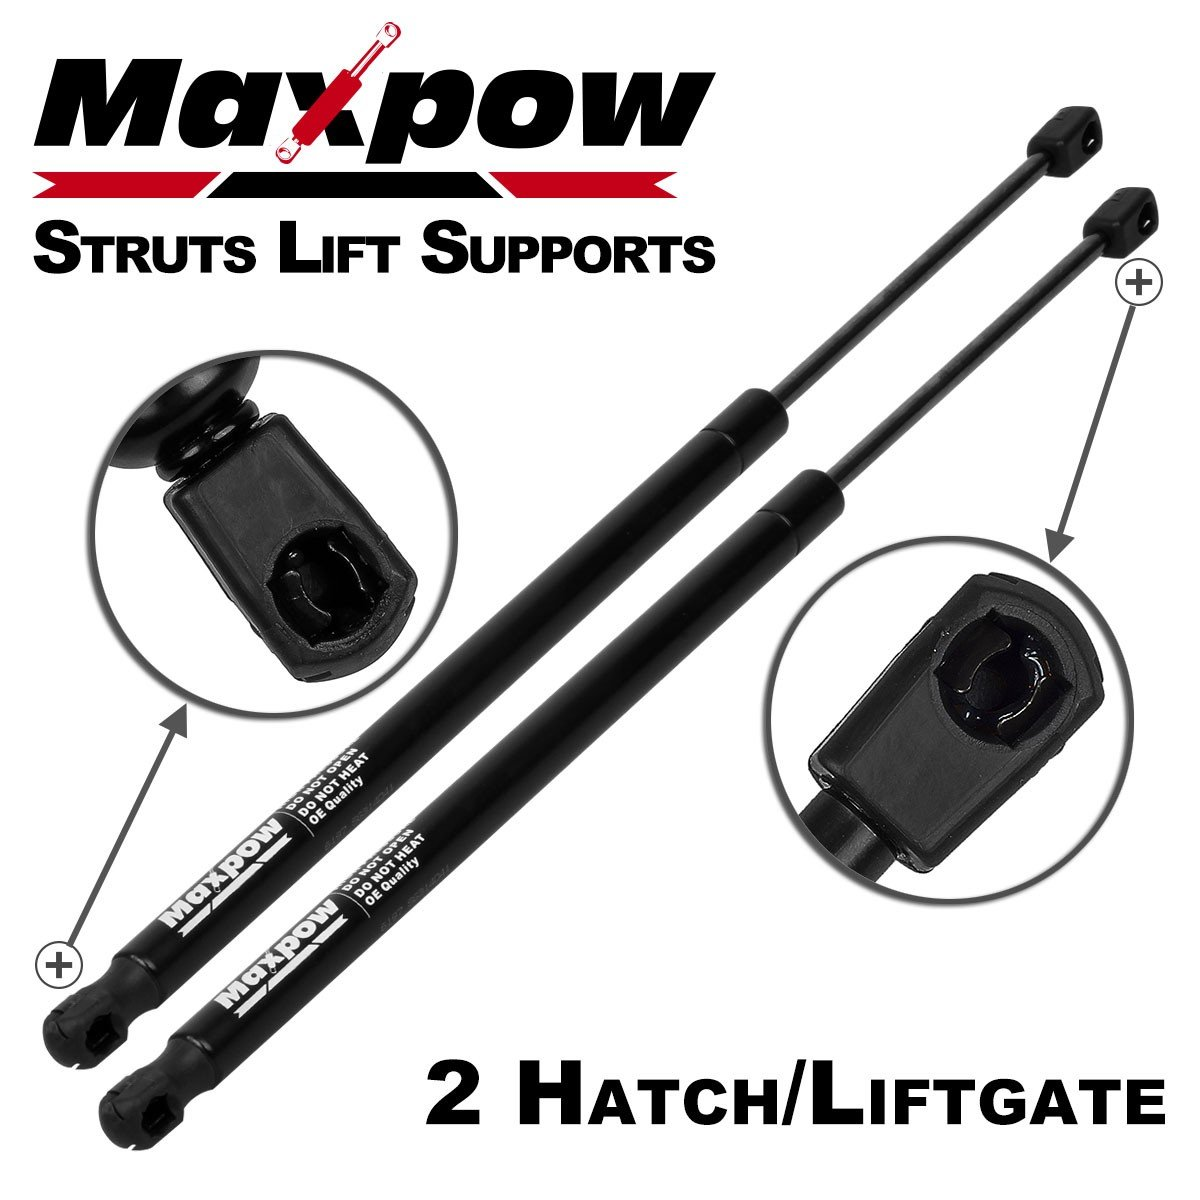 Maxpow 2Pcs Tailgate Trunk Liftgate Lift Supports Struts For 1995-2004 Chevrolet Suburban